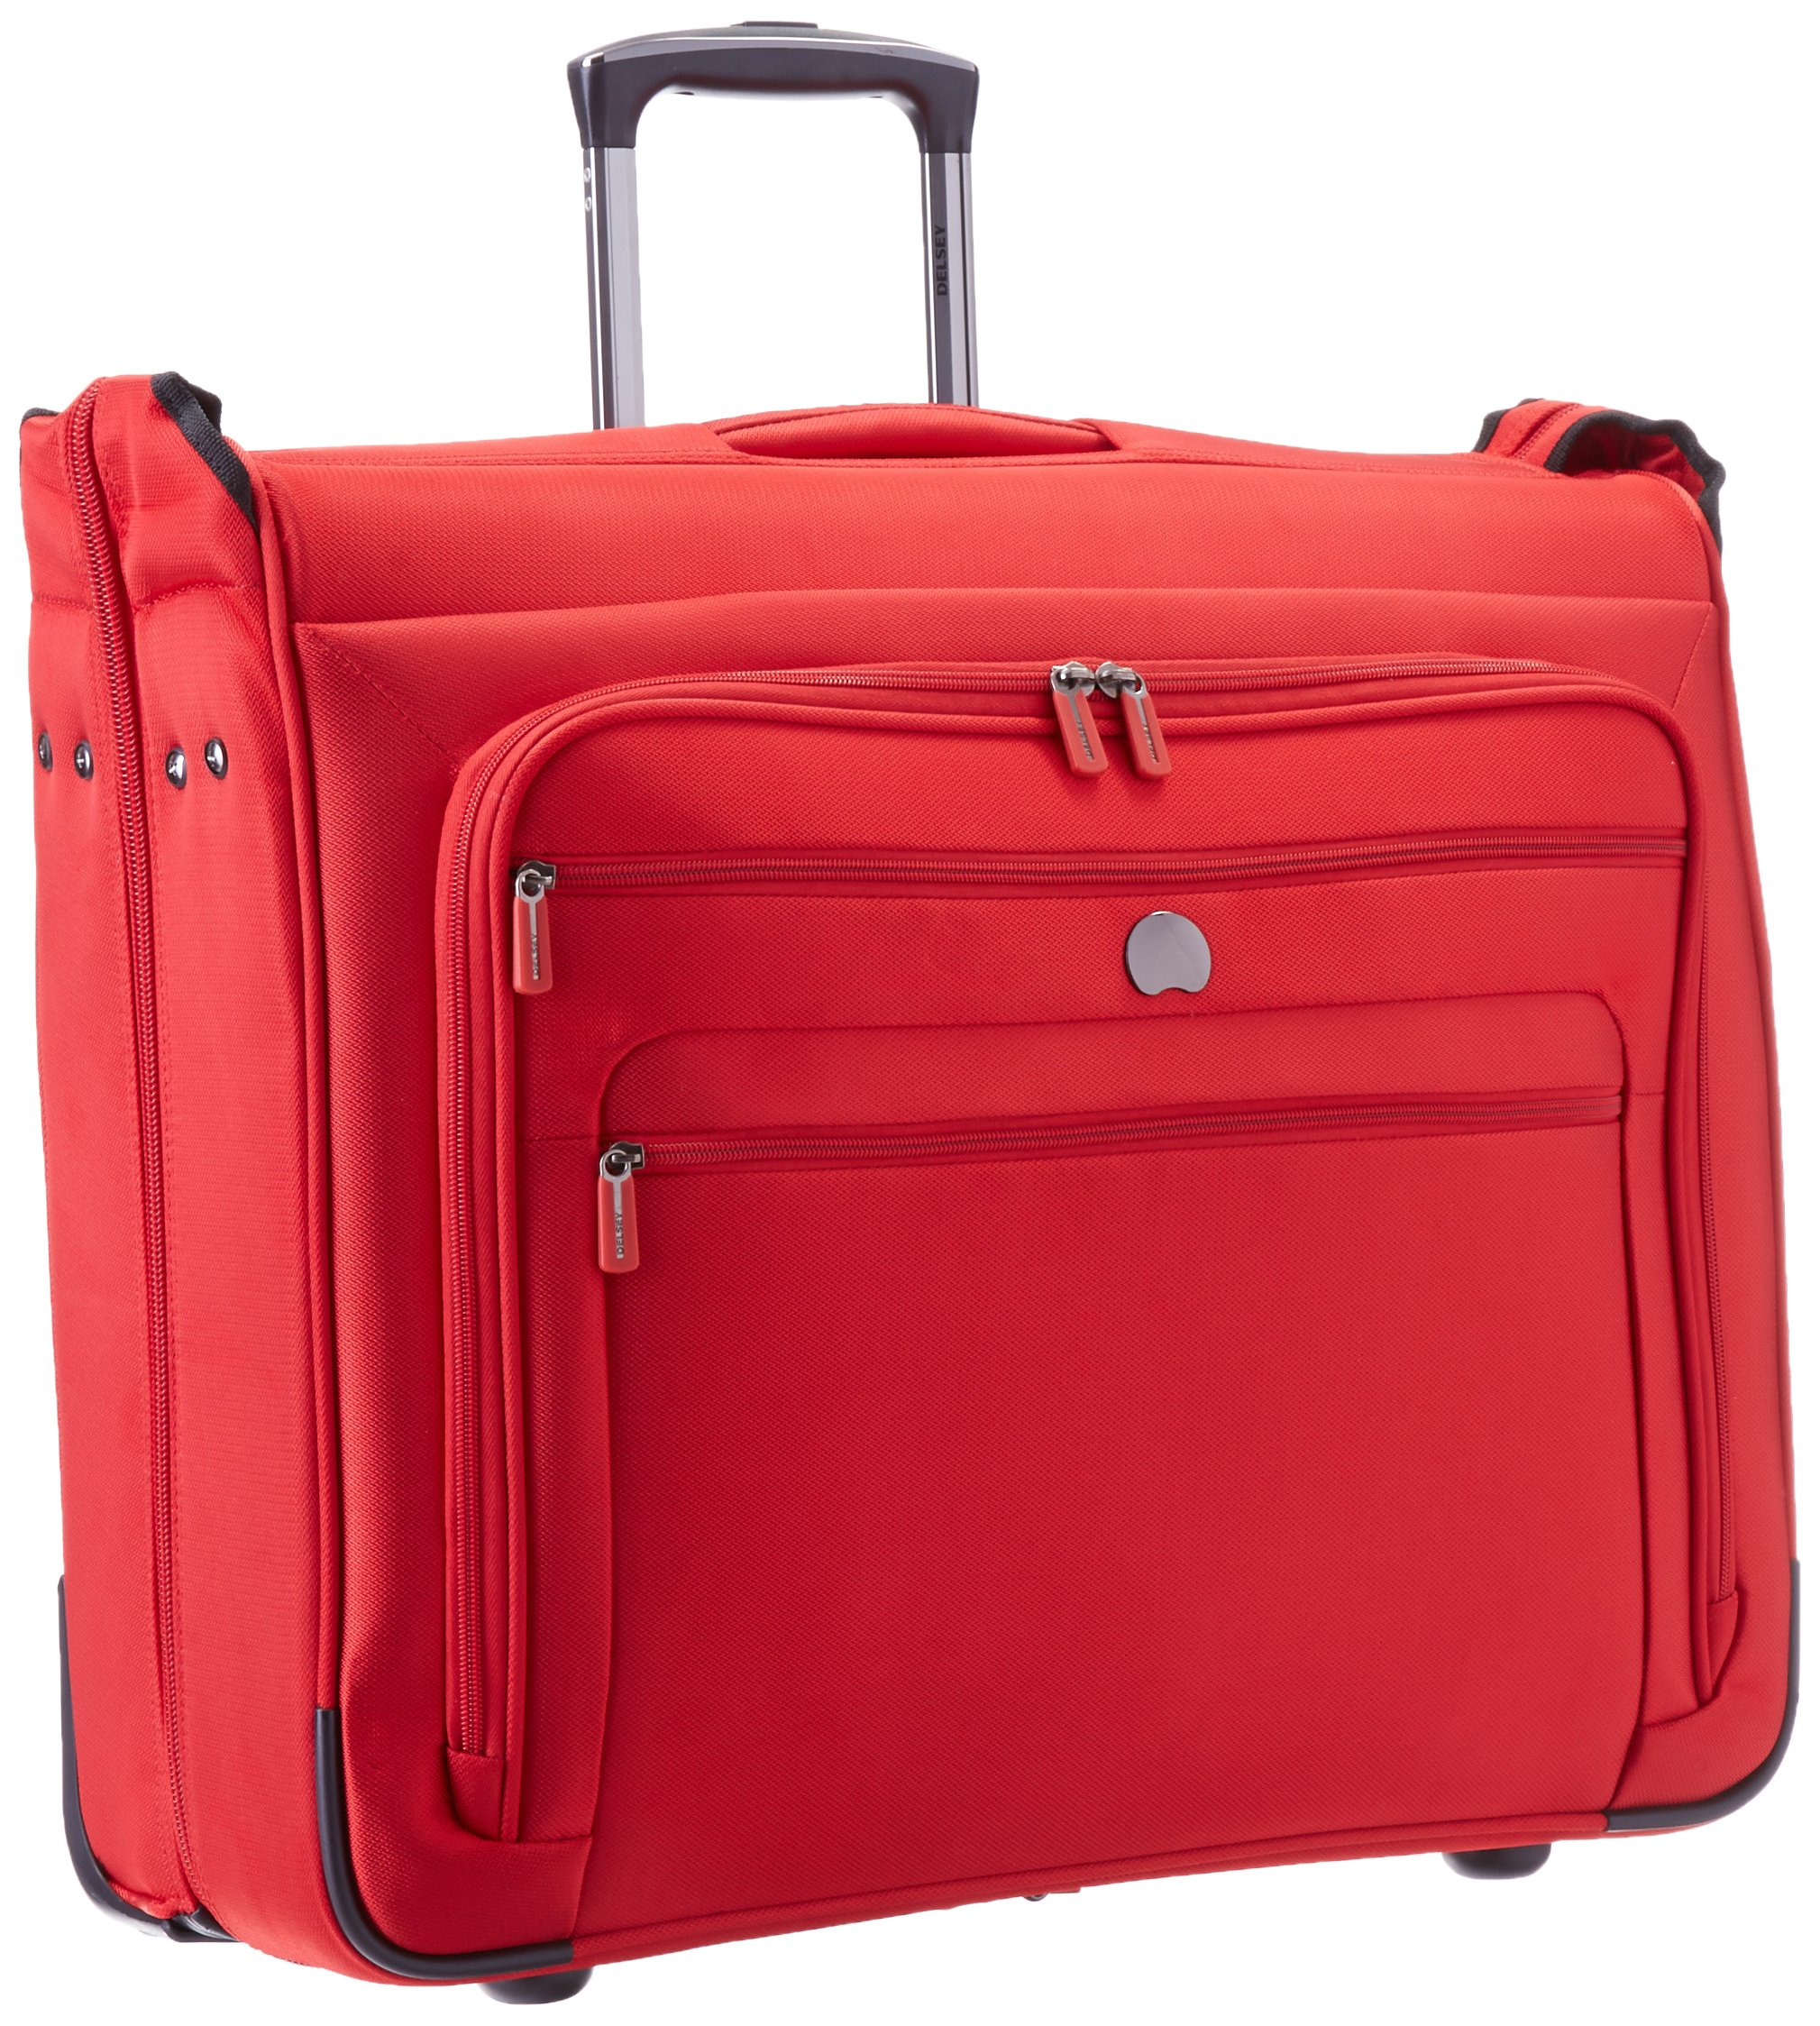 Delsey Luggage Helium Sky 2.0 Trolley Garment Bag